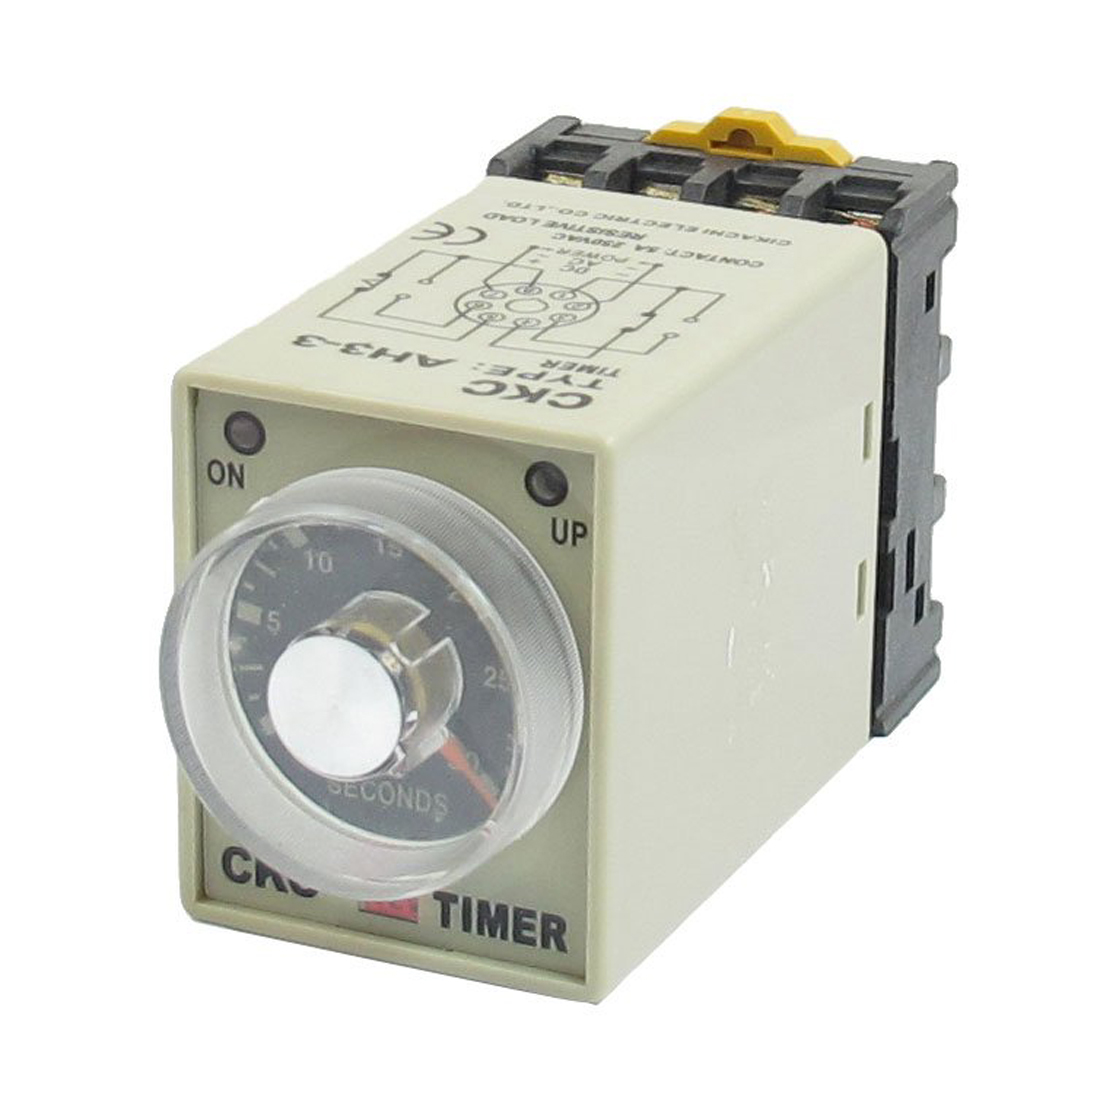 DHDL-DC 12V 0-30 Seconds 30s Electric Delay Timer Timing Relay DPDT 8P w Base knob control ac110v 8p dpdt 5s seconds timer time delay relay w socket